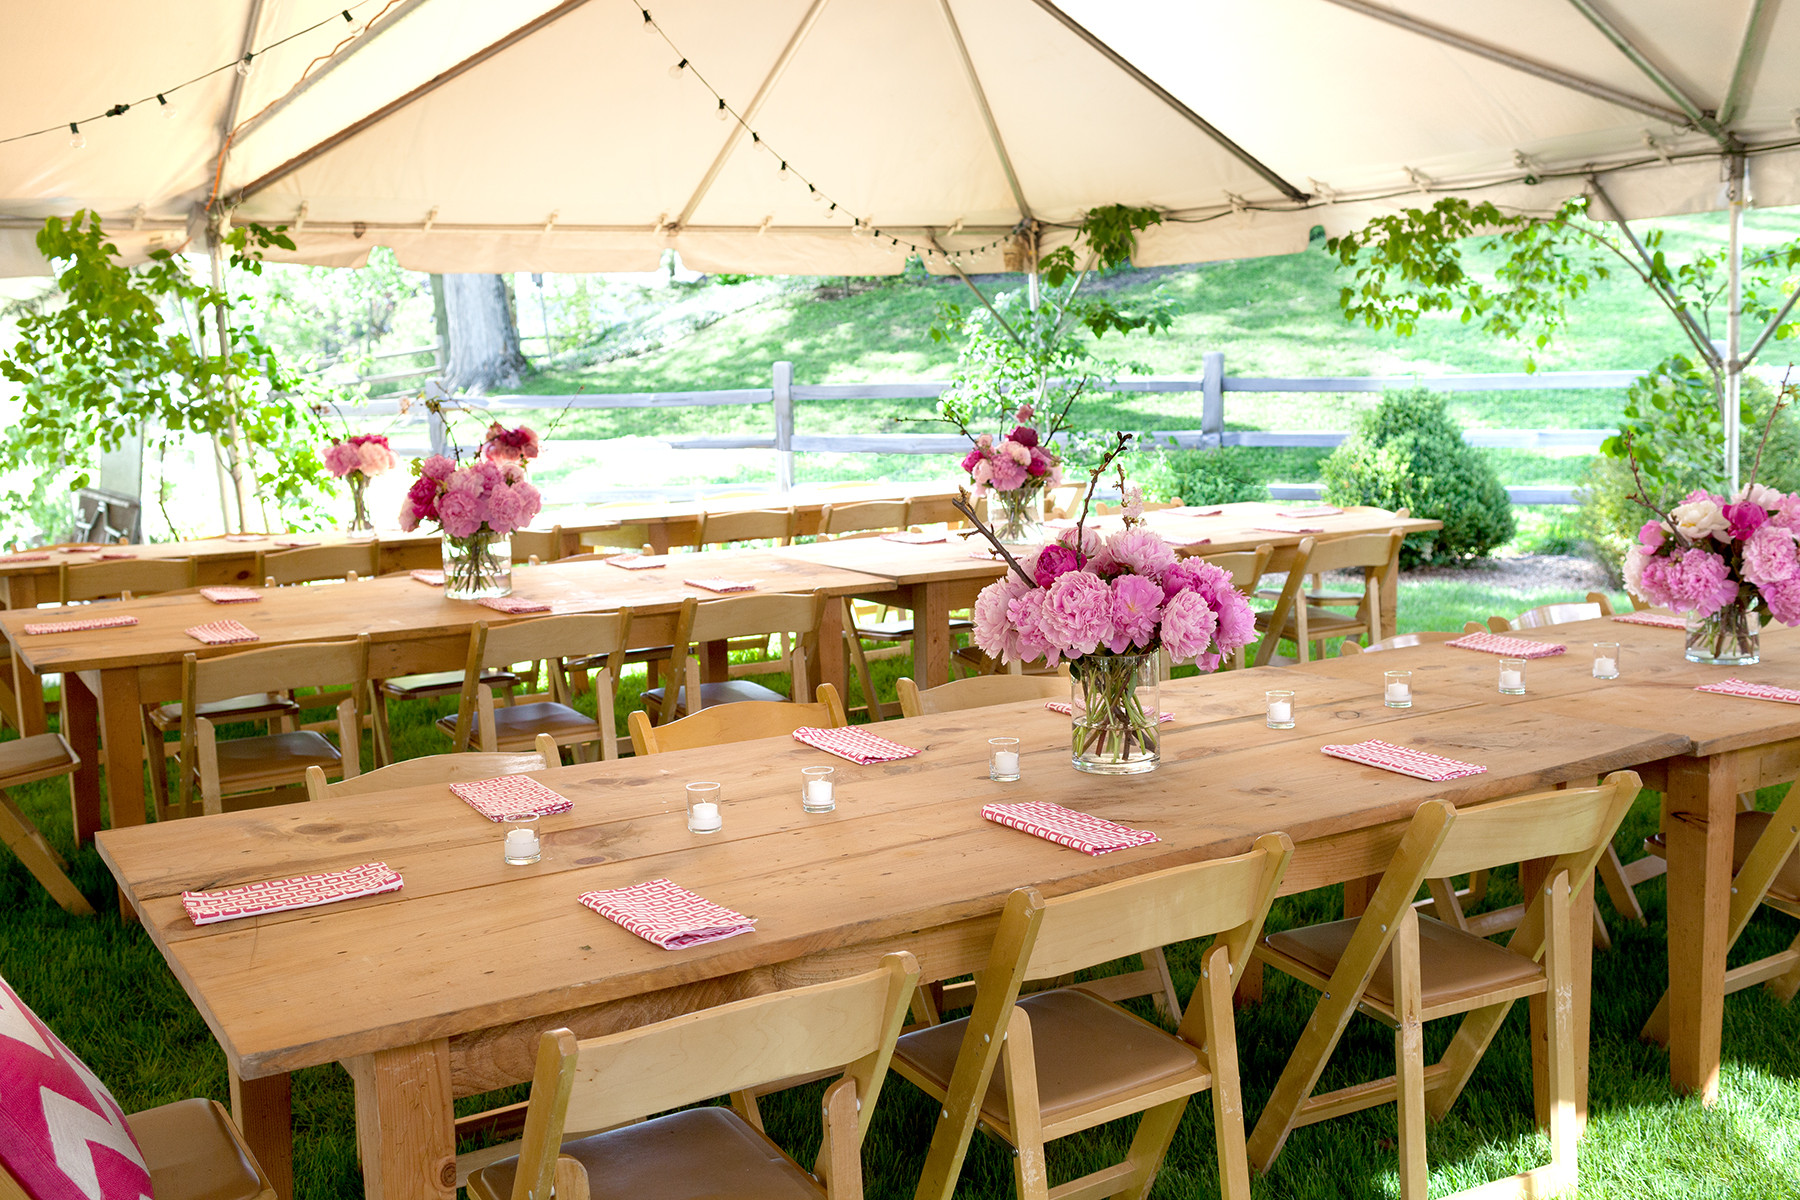 Backyard Table Ideas  Simple Outdoor Party Decorations—for Your Table and More